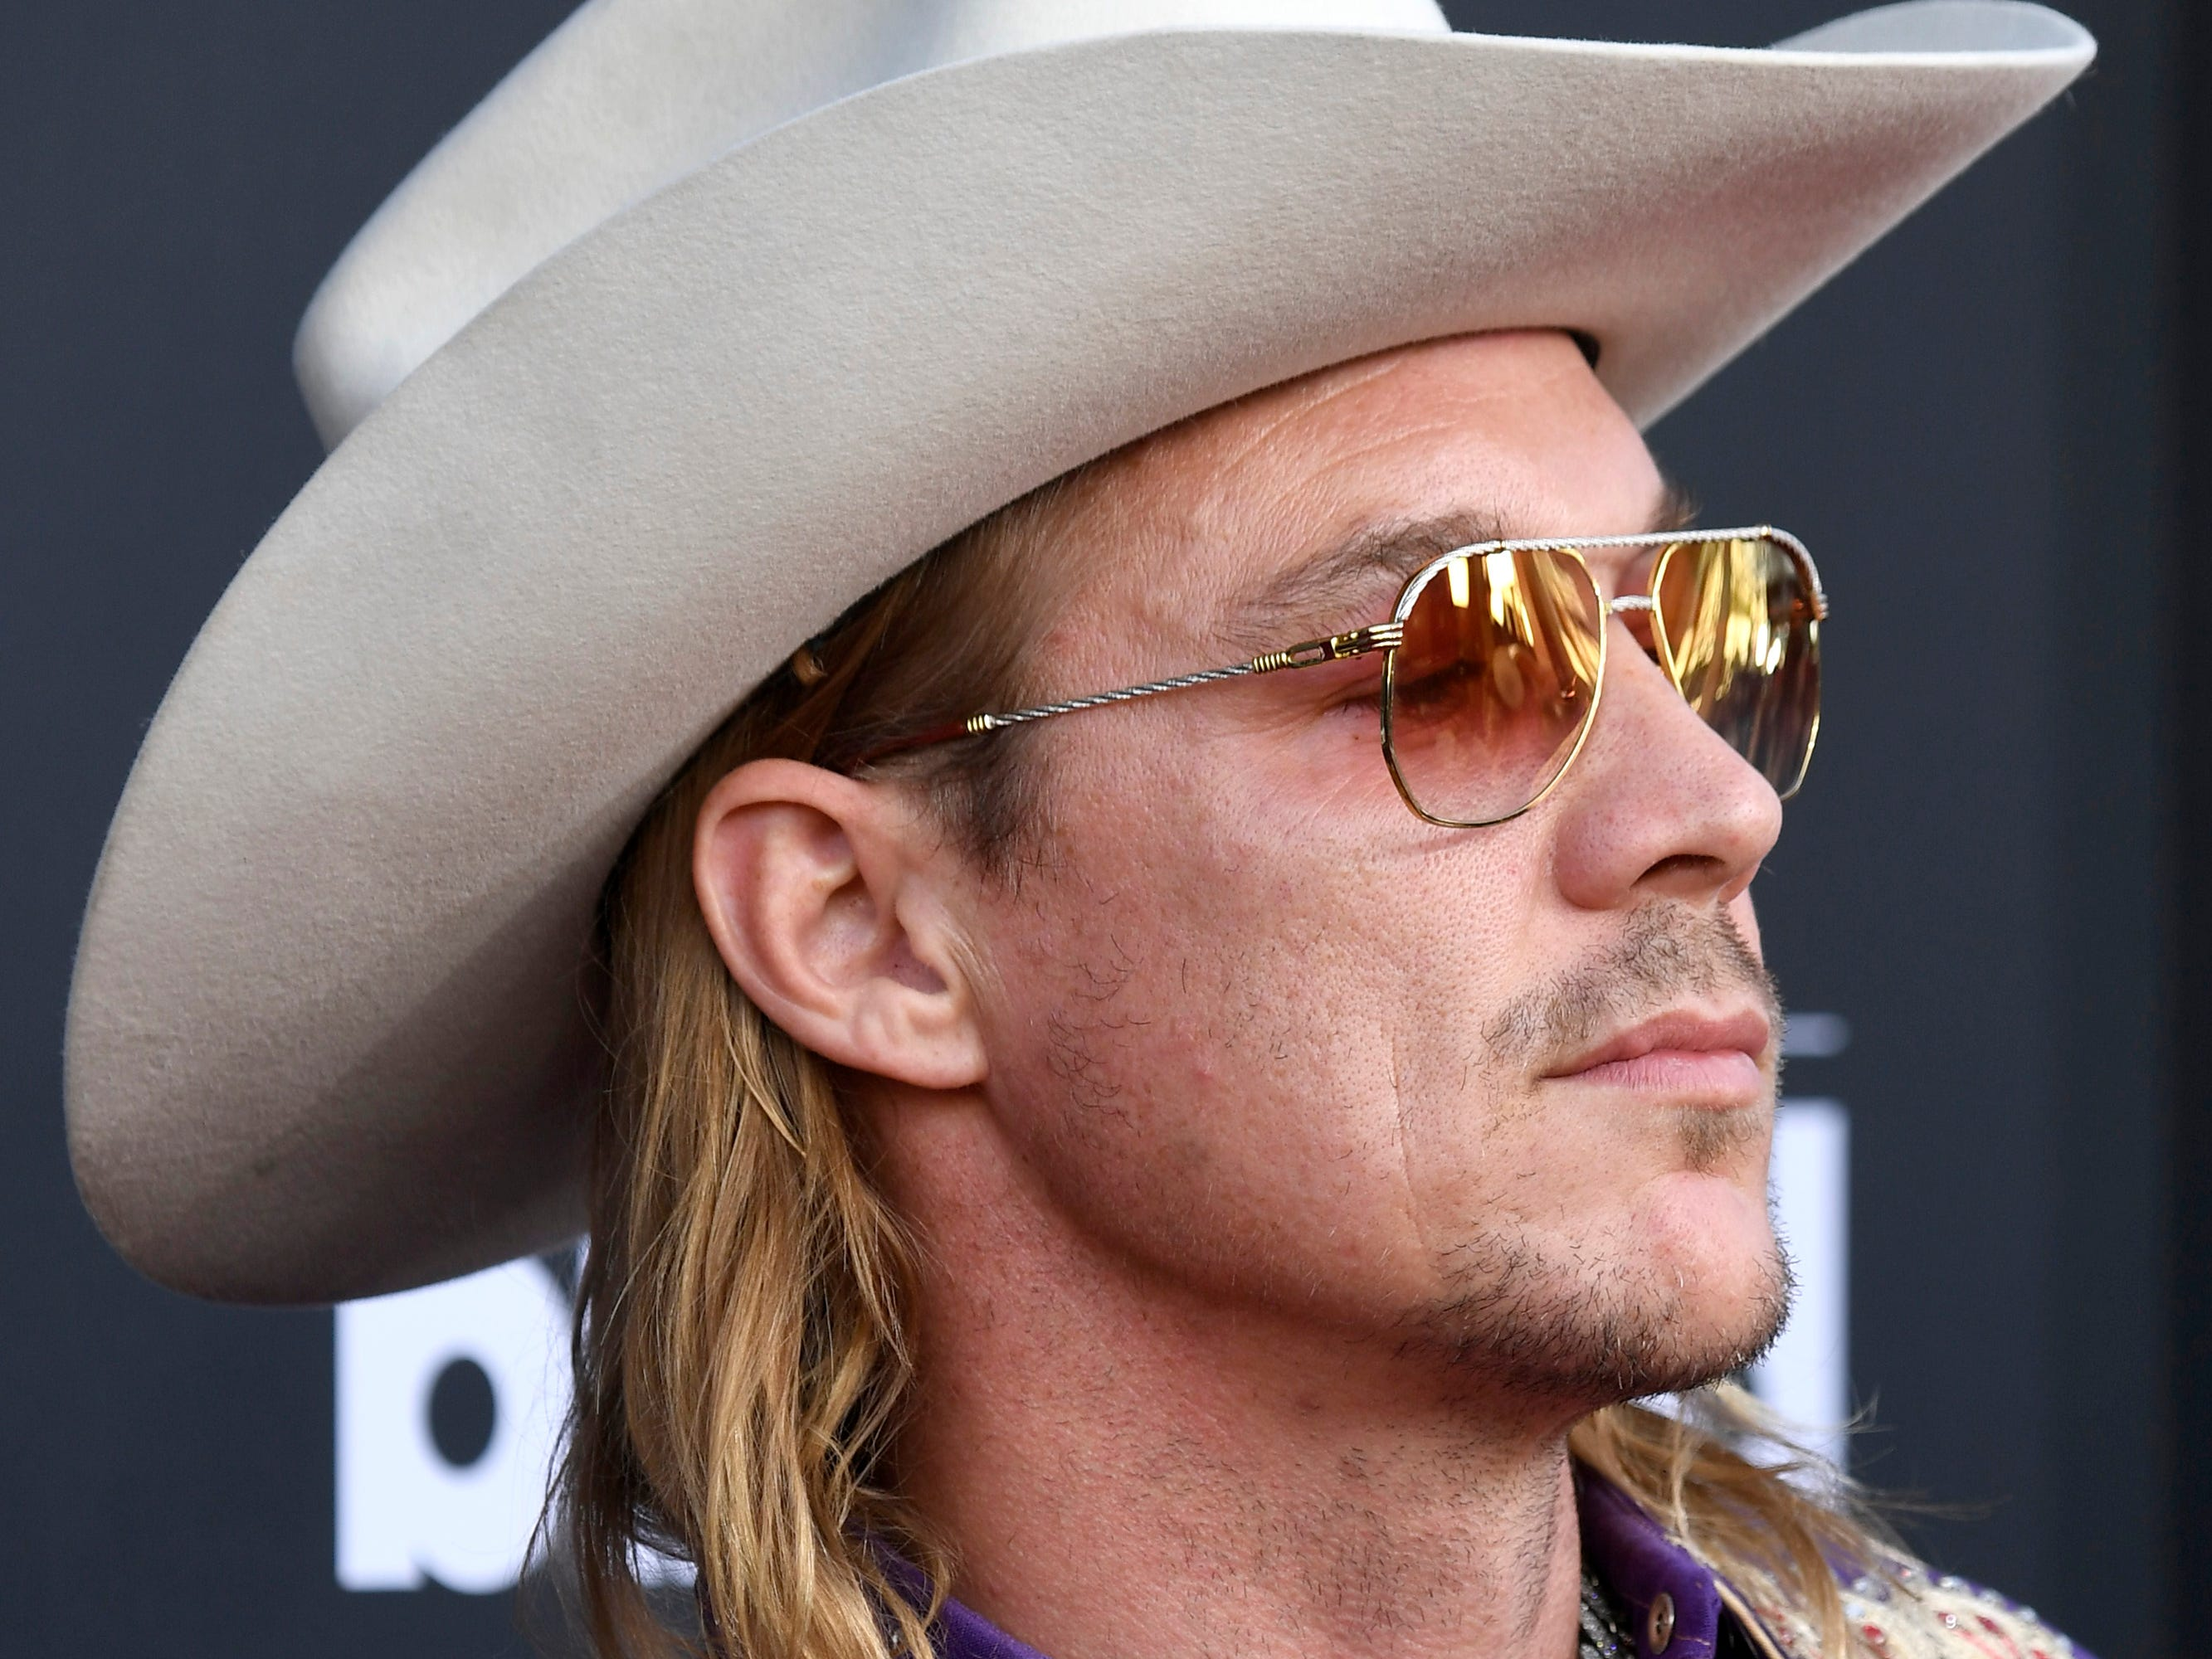 Diplo attends the 2019 Billboard Music Awards at MGM Grand Garden Arena on May 01, 2019 in Las Vegas, Nevada.